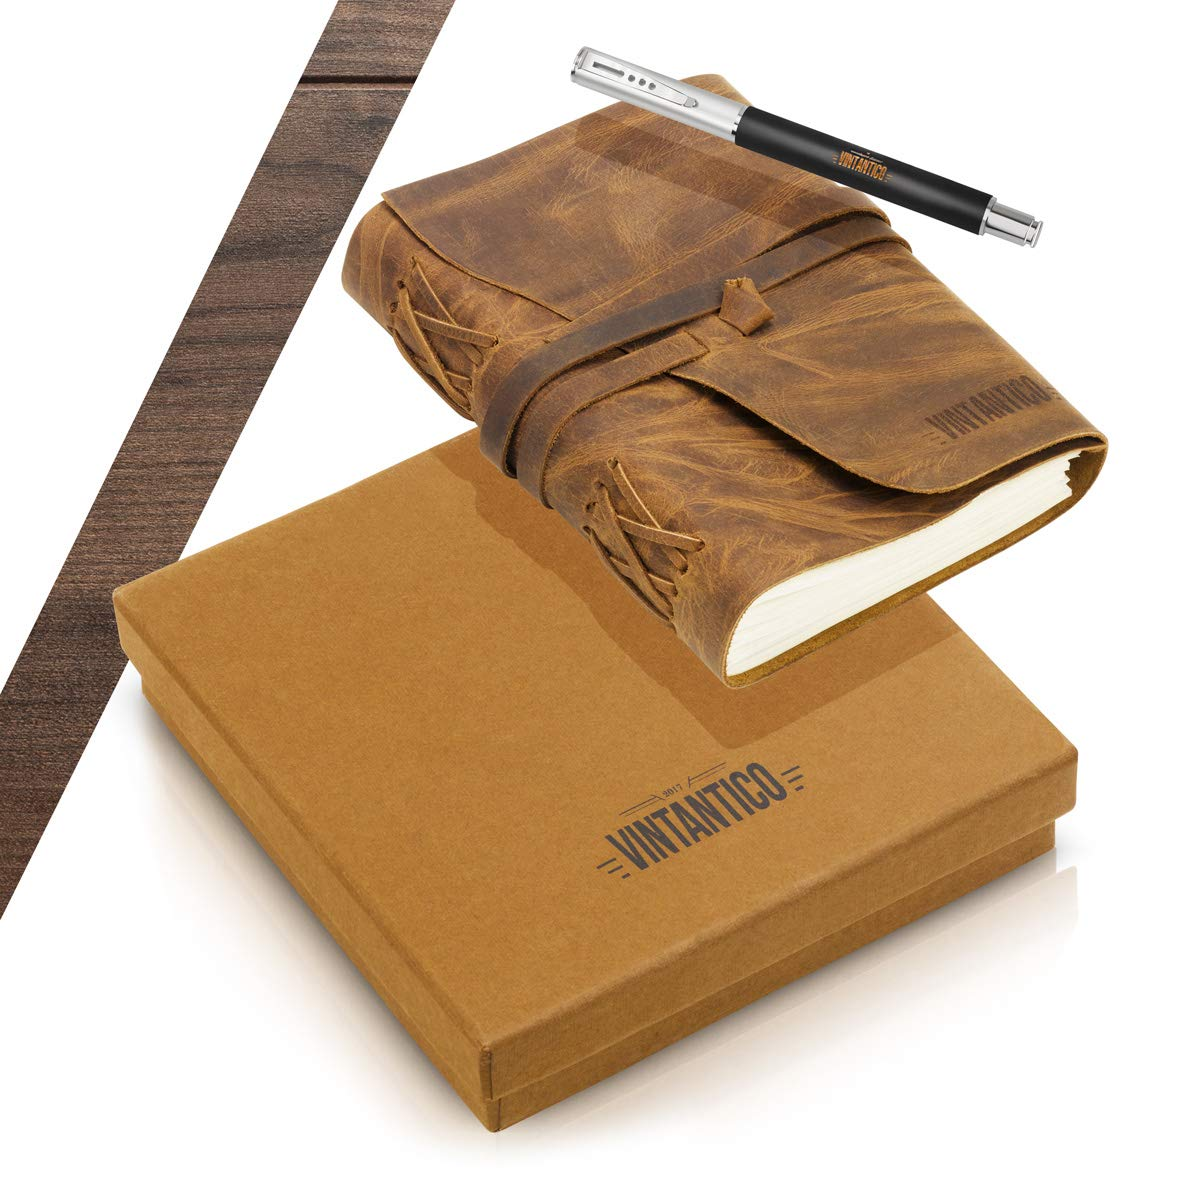 Vintantico Genuine Leather Journal with Writing Pen (Brown) Vintage, Bound, Handmade Cover Recycled Unlined Paper   Men's & Women's Personal Notepad   Incl. Bookmark, Gift Box by Vintantico (Image #4)